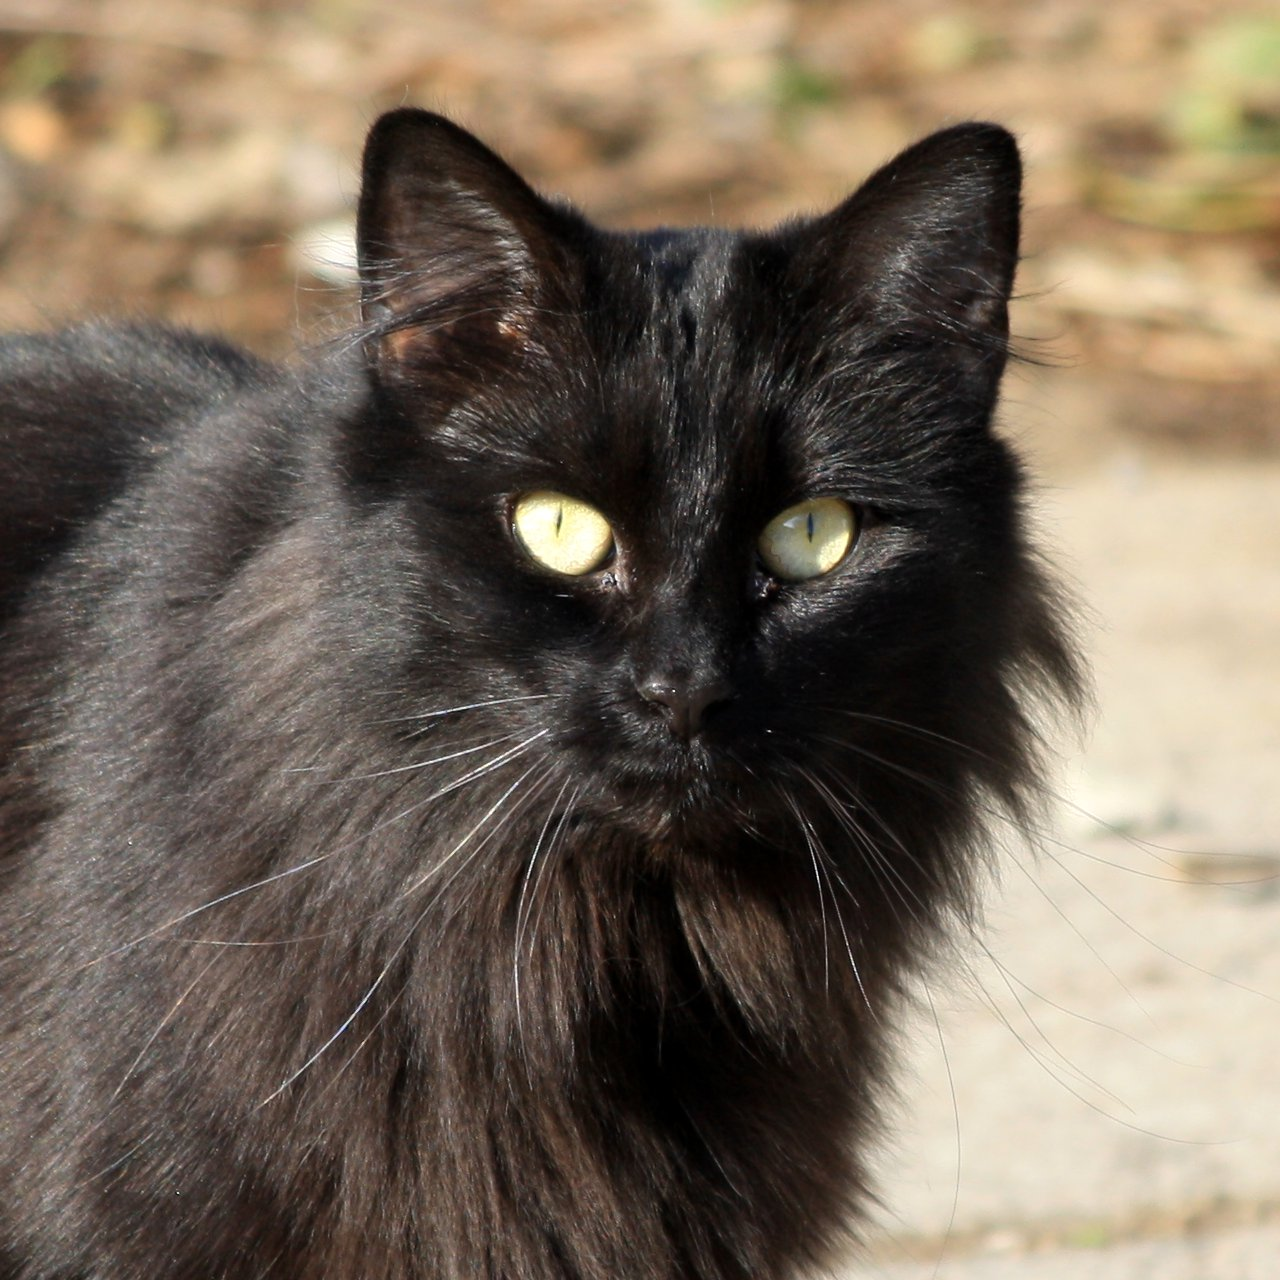 Black Cat Close Up Picture | Free Photograph | Photos ...